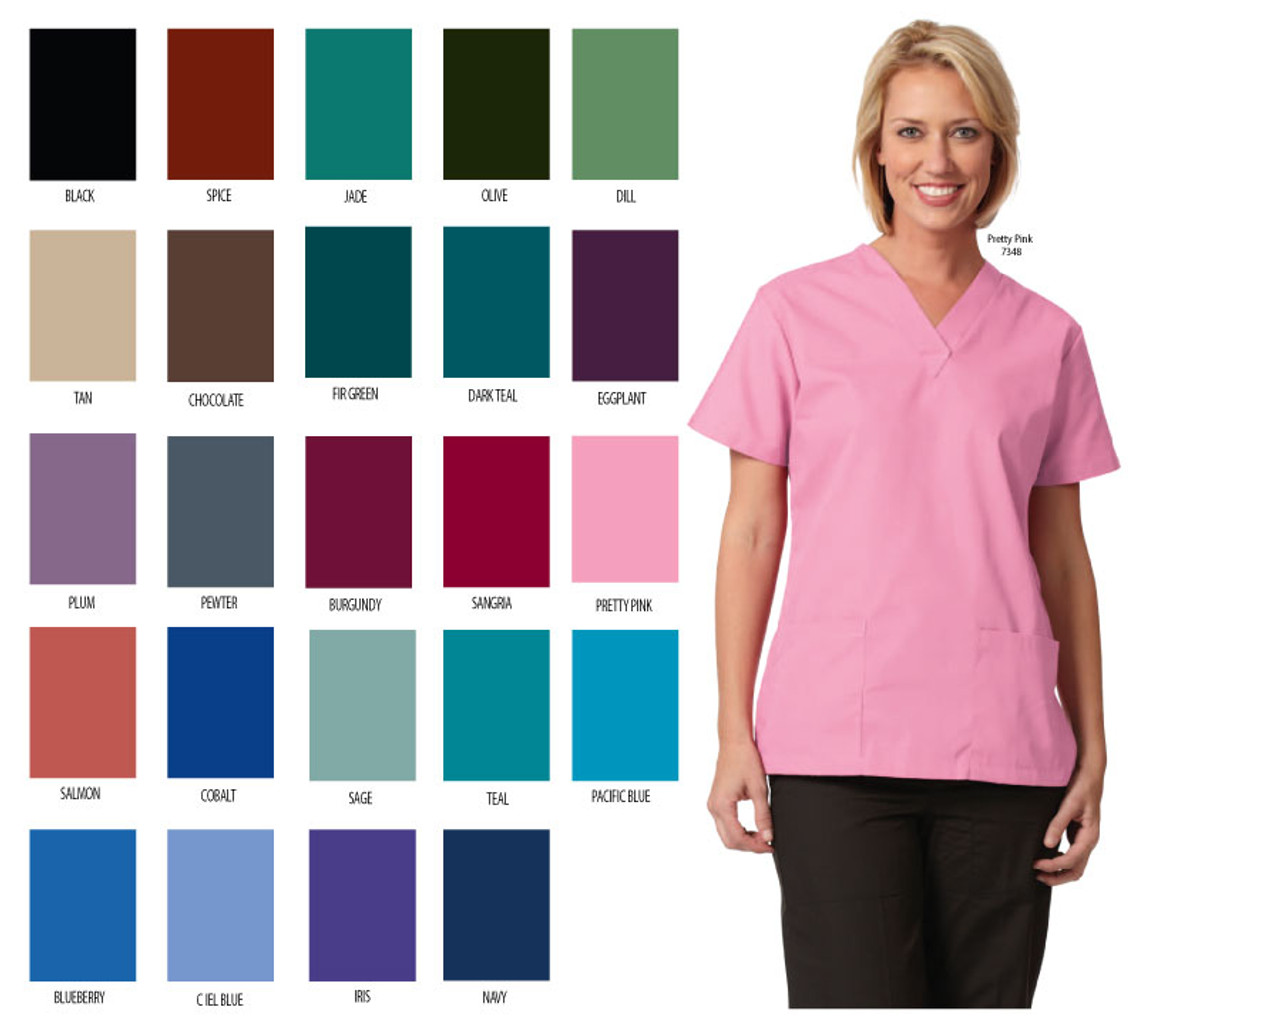 Medical scrub tunic for women